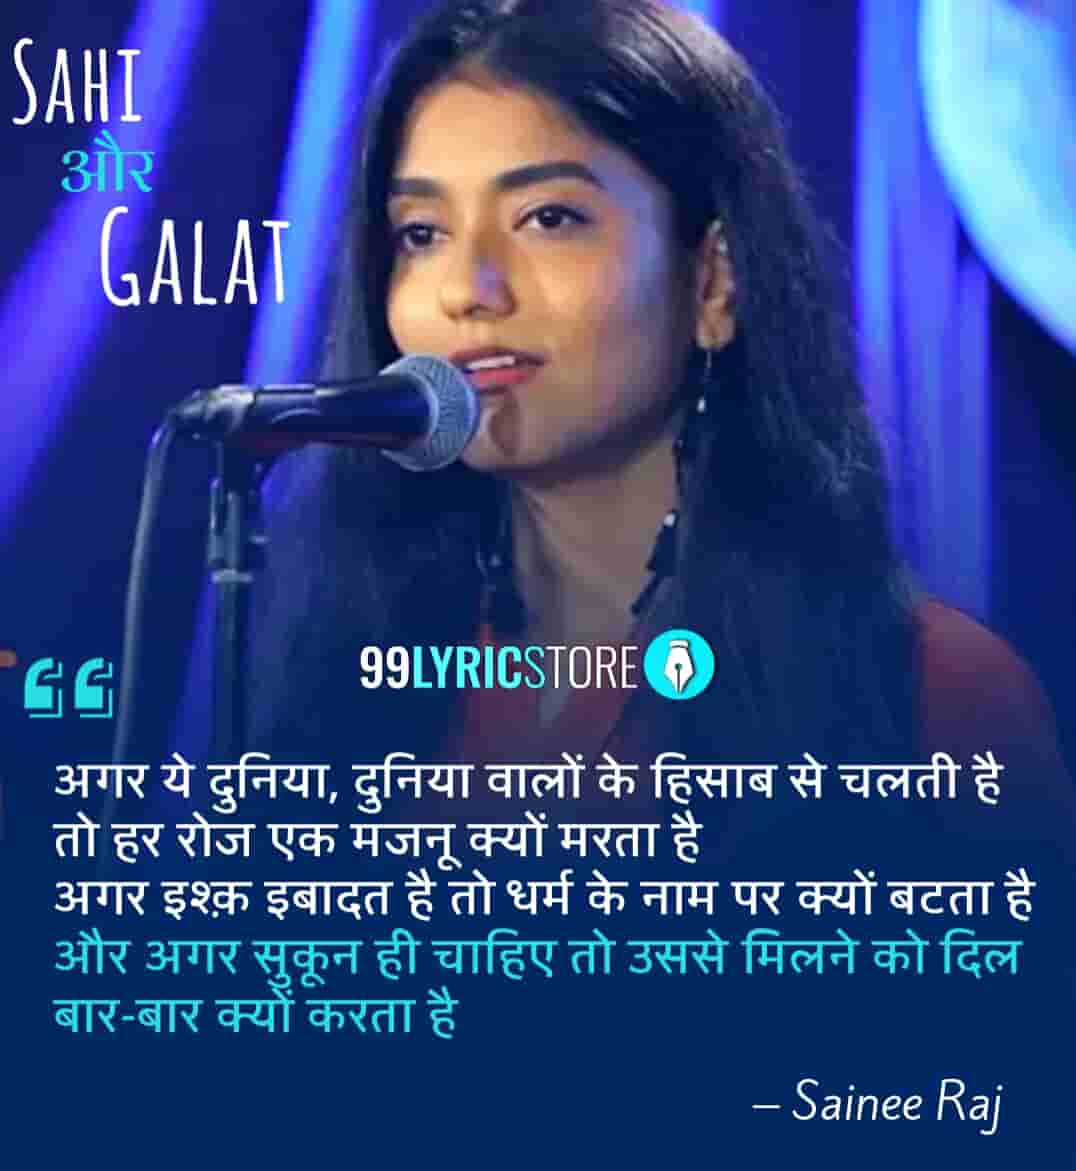 This beautiful Poetry 'Sahi Aur Galat'  has written and performed by Sainee Raj. Shot at held on The Cuckoo Club Bandra.